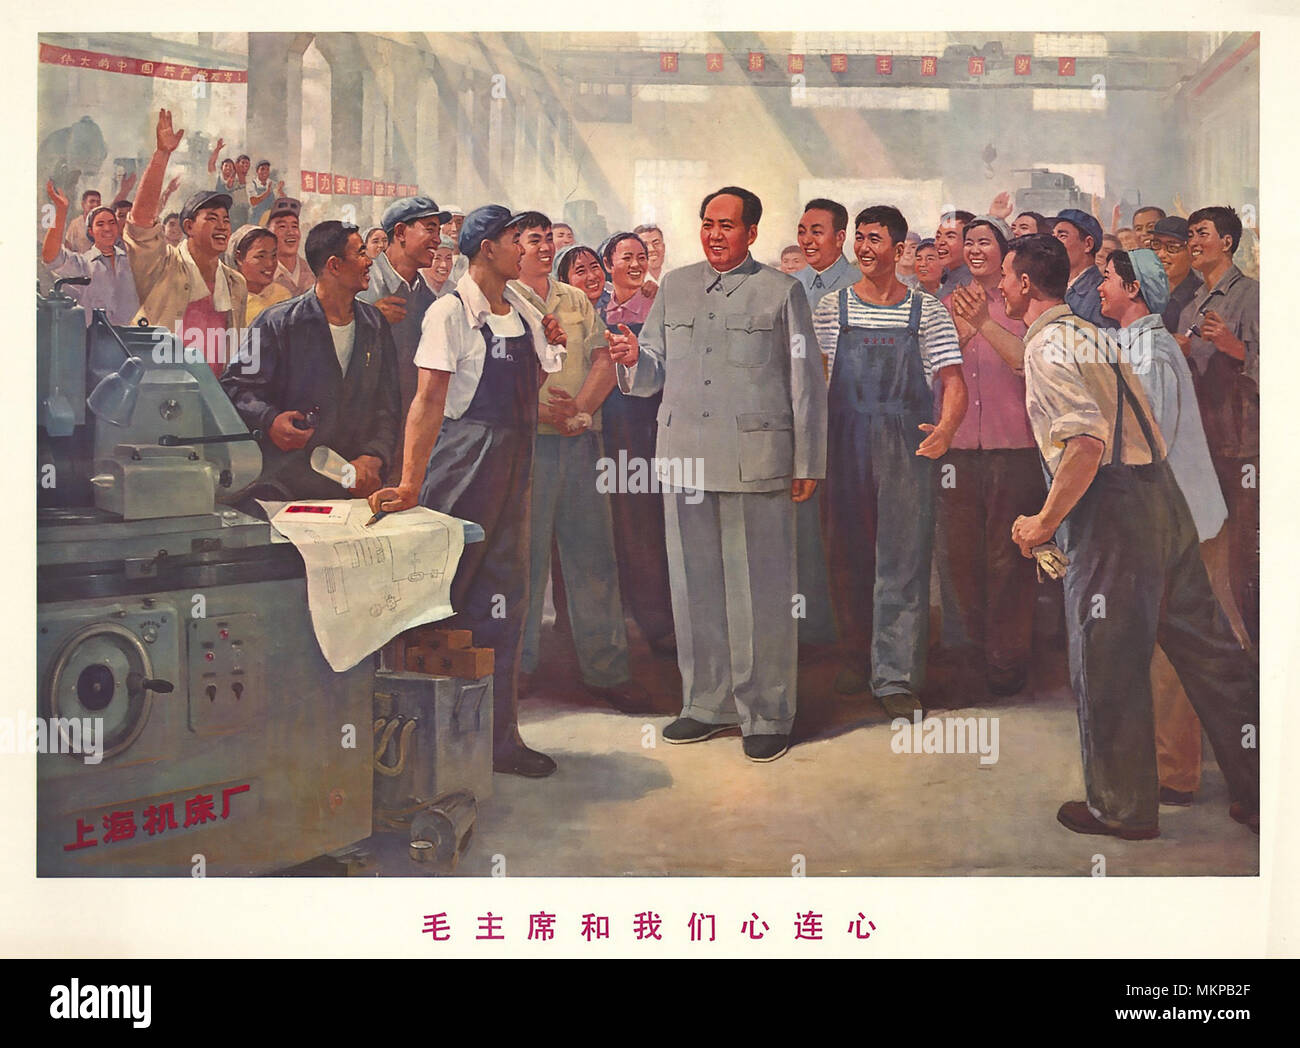 Chinese Cultural Revolution 1950's  Propaganda Picture Poster of the Working Class advocated by the Chinese Cultural Revolution with Chairman Mao surrounded by his adoring workers - Stock Image